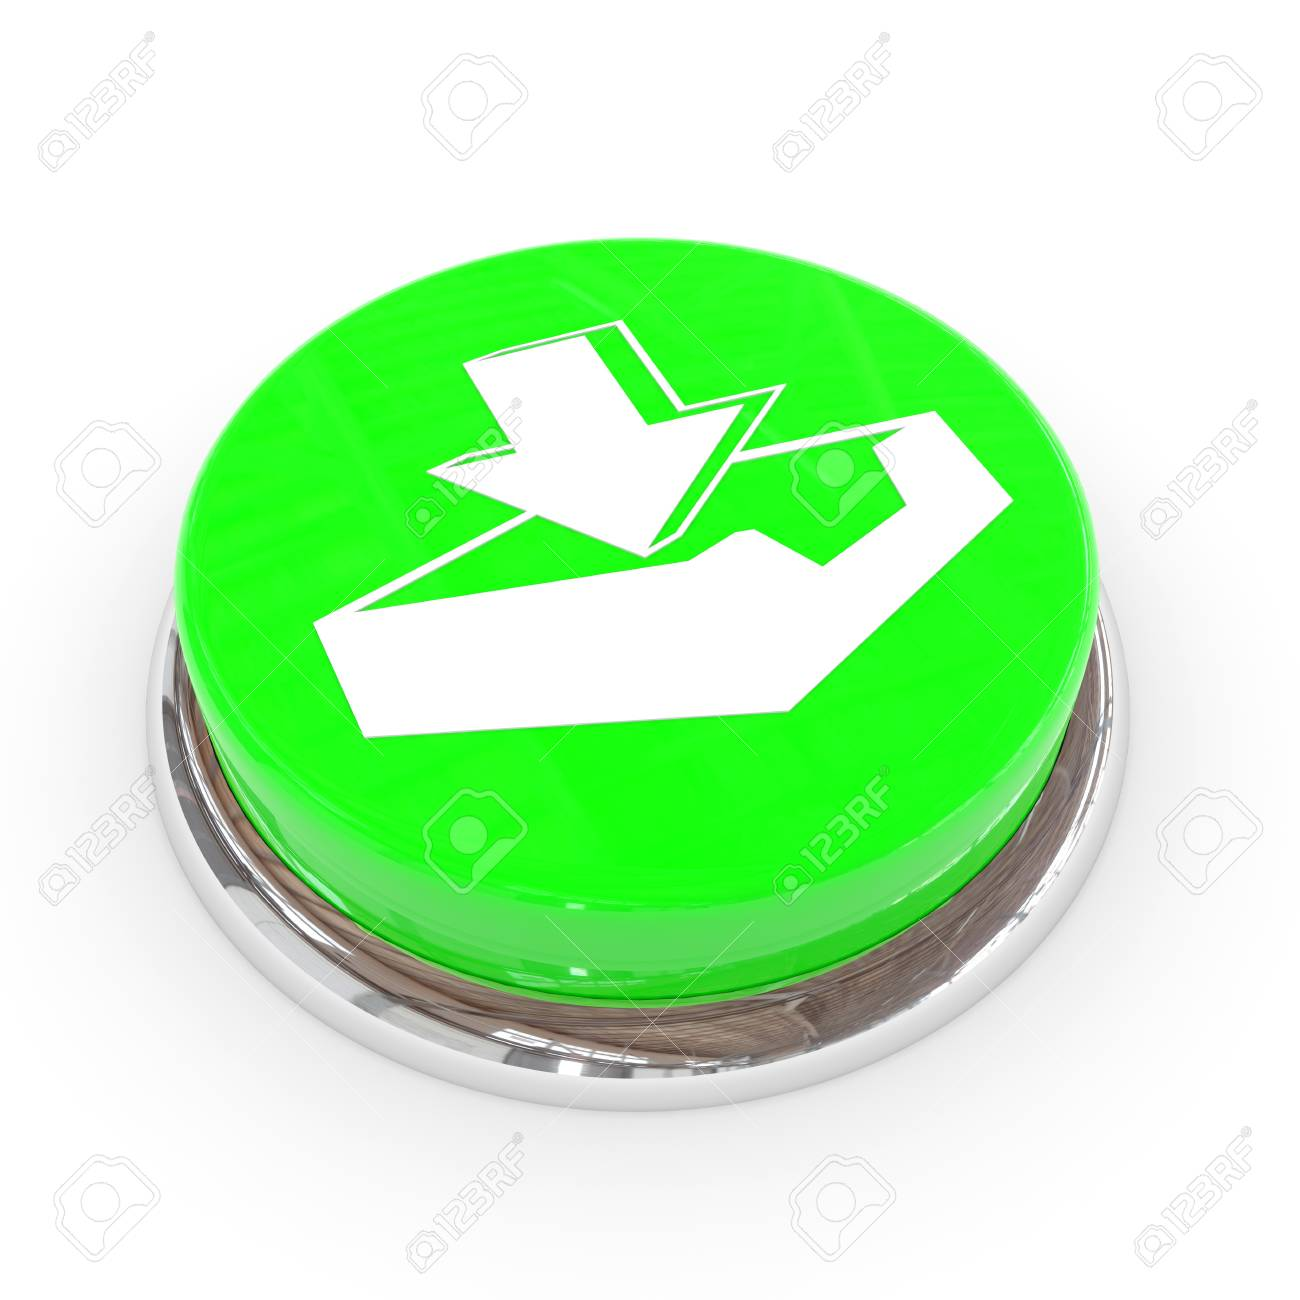 Green round button with download sign. Computer generated image. Stock Photo - 11818150